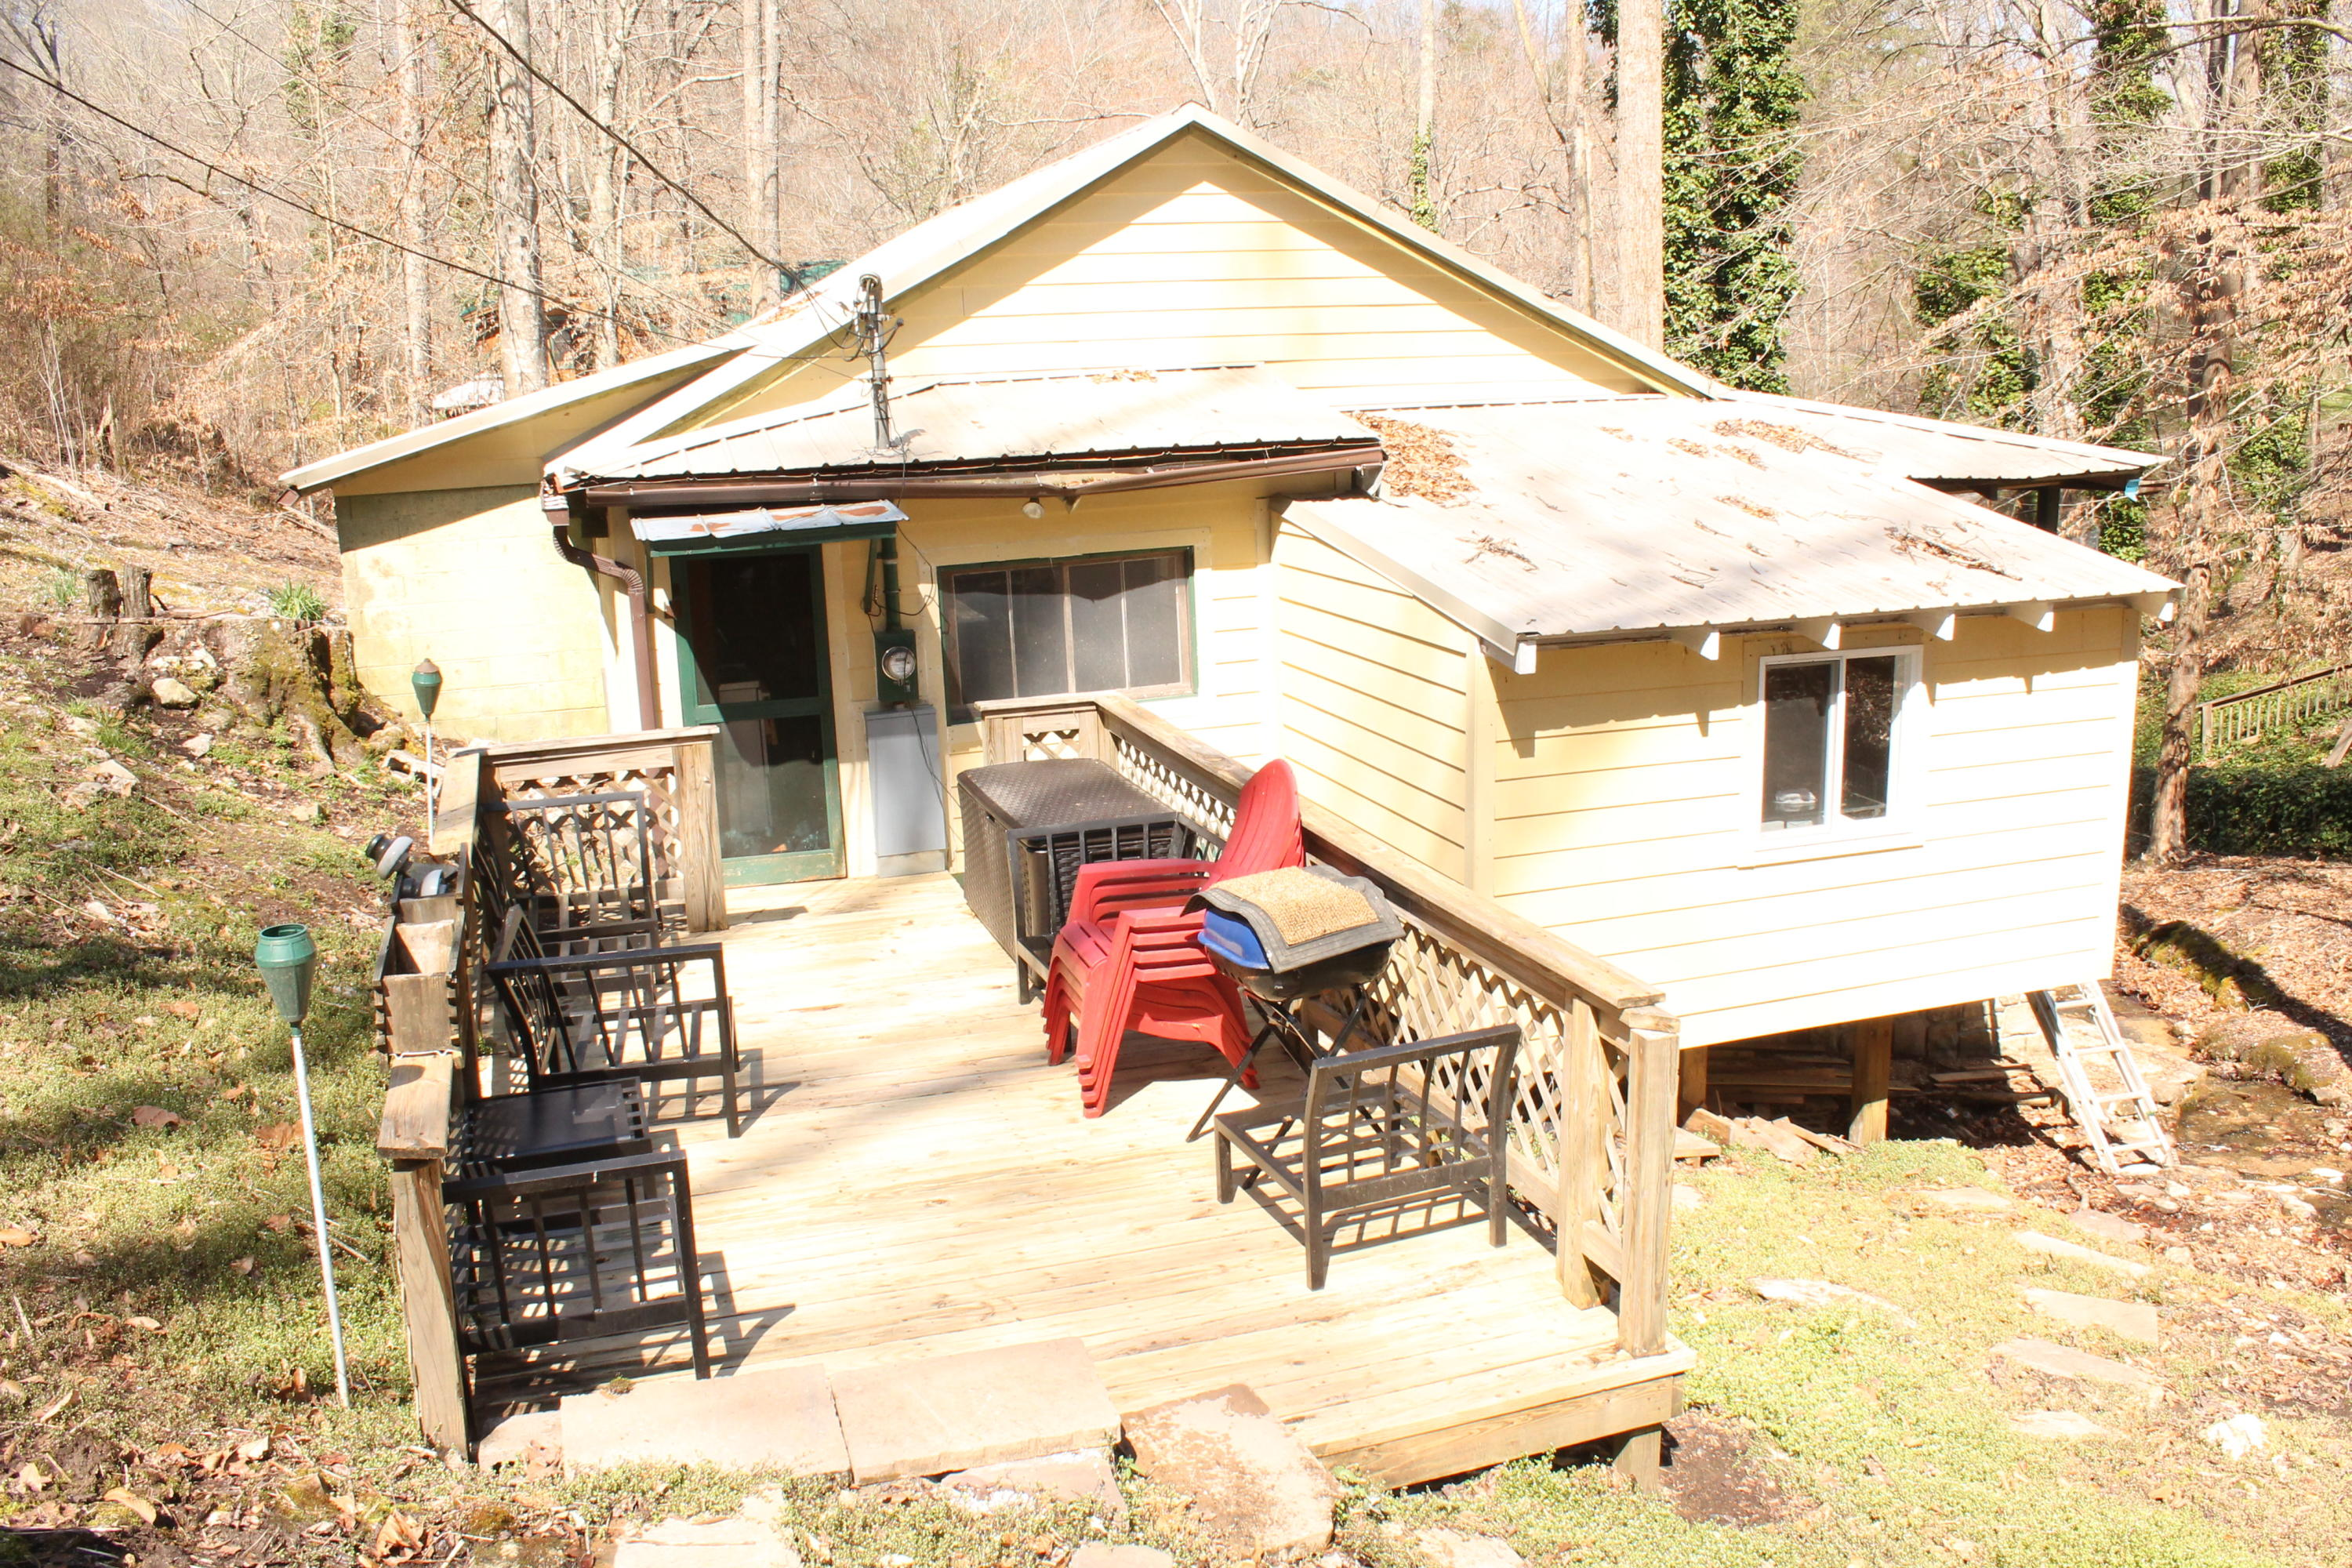 169 Summers Rd, Maynardville, Tennessee 37807, 3 Bedrooms Bedrooms, ,1 BathroomBathrooms,Single Family,For Sale,Summers,1074300